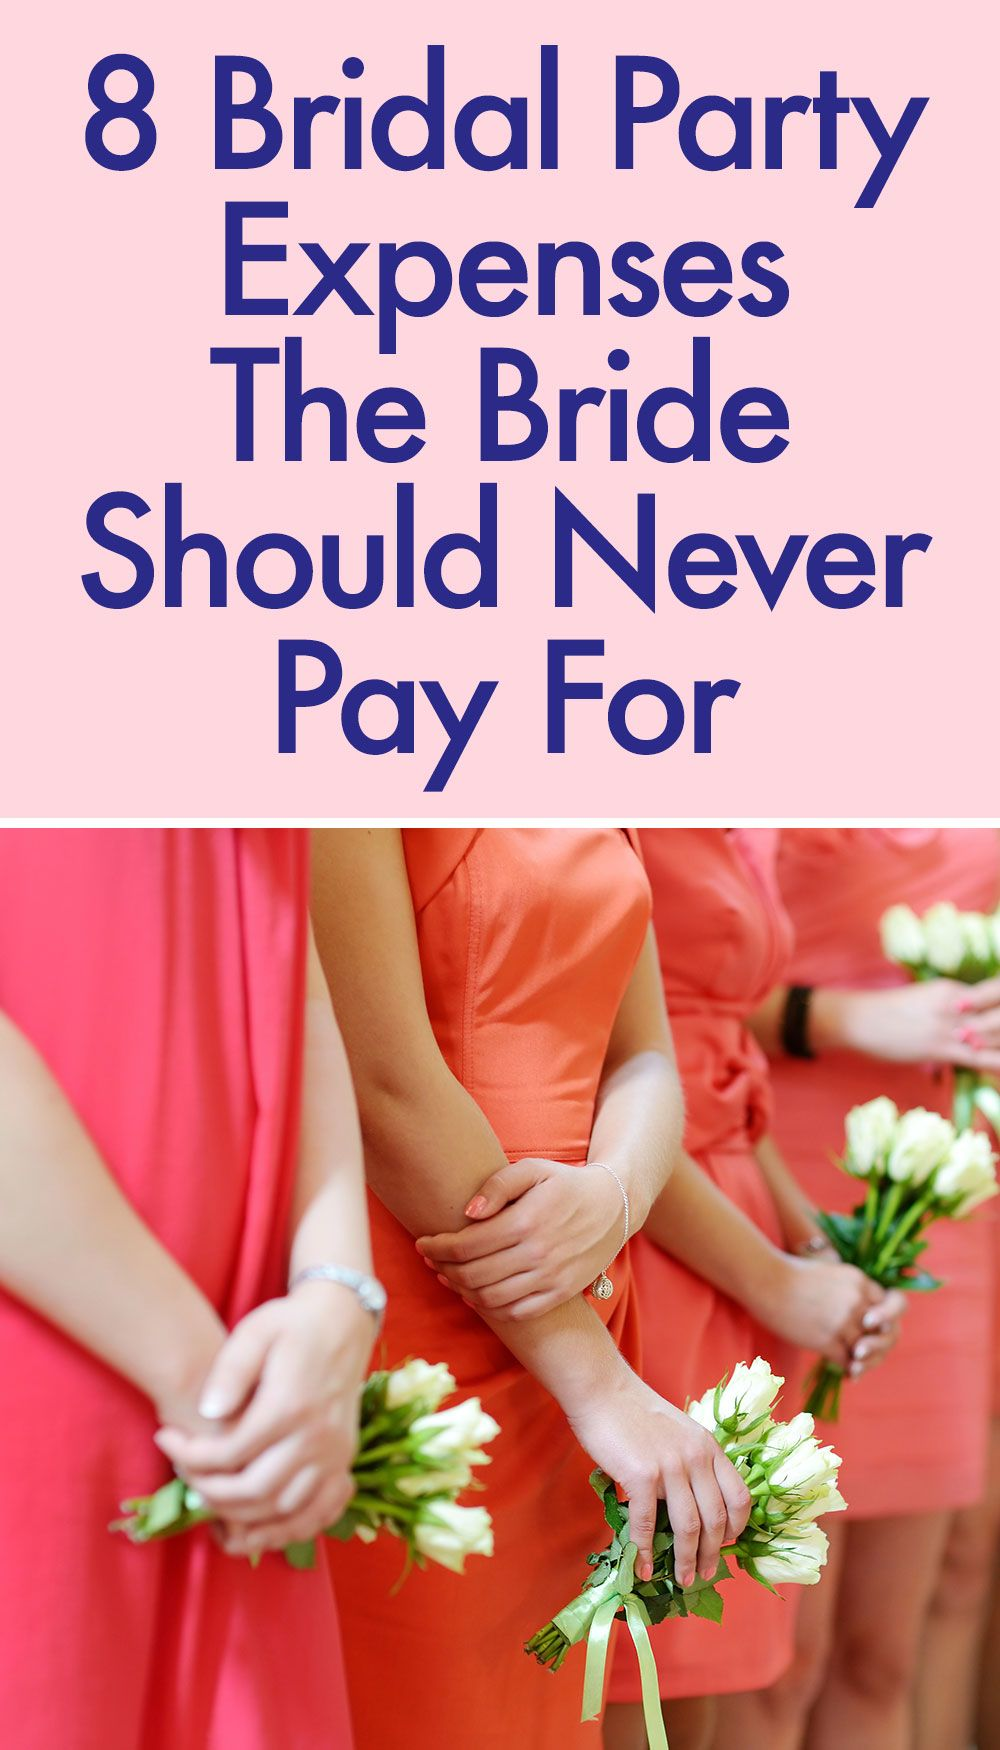 8 Bridal Party Expenses The Bride Should Never Pay For Wedding